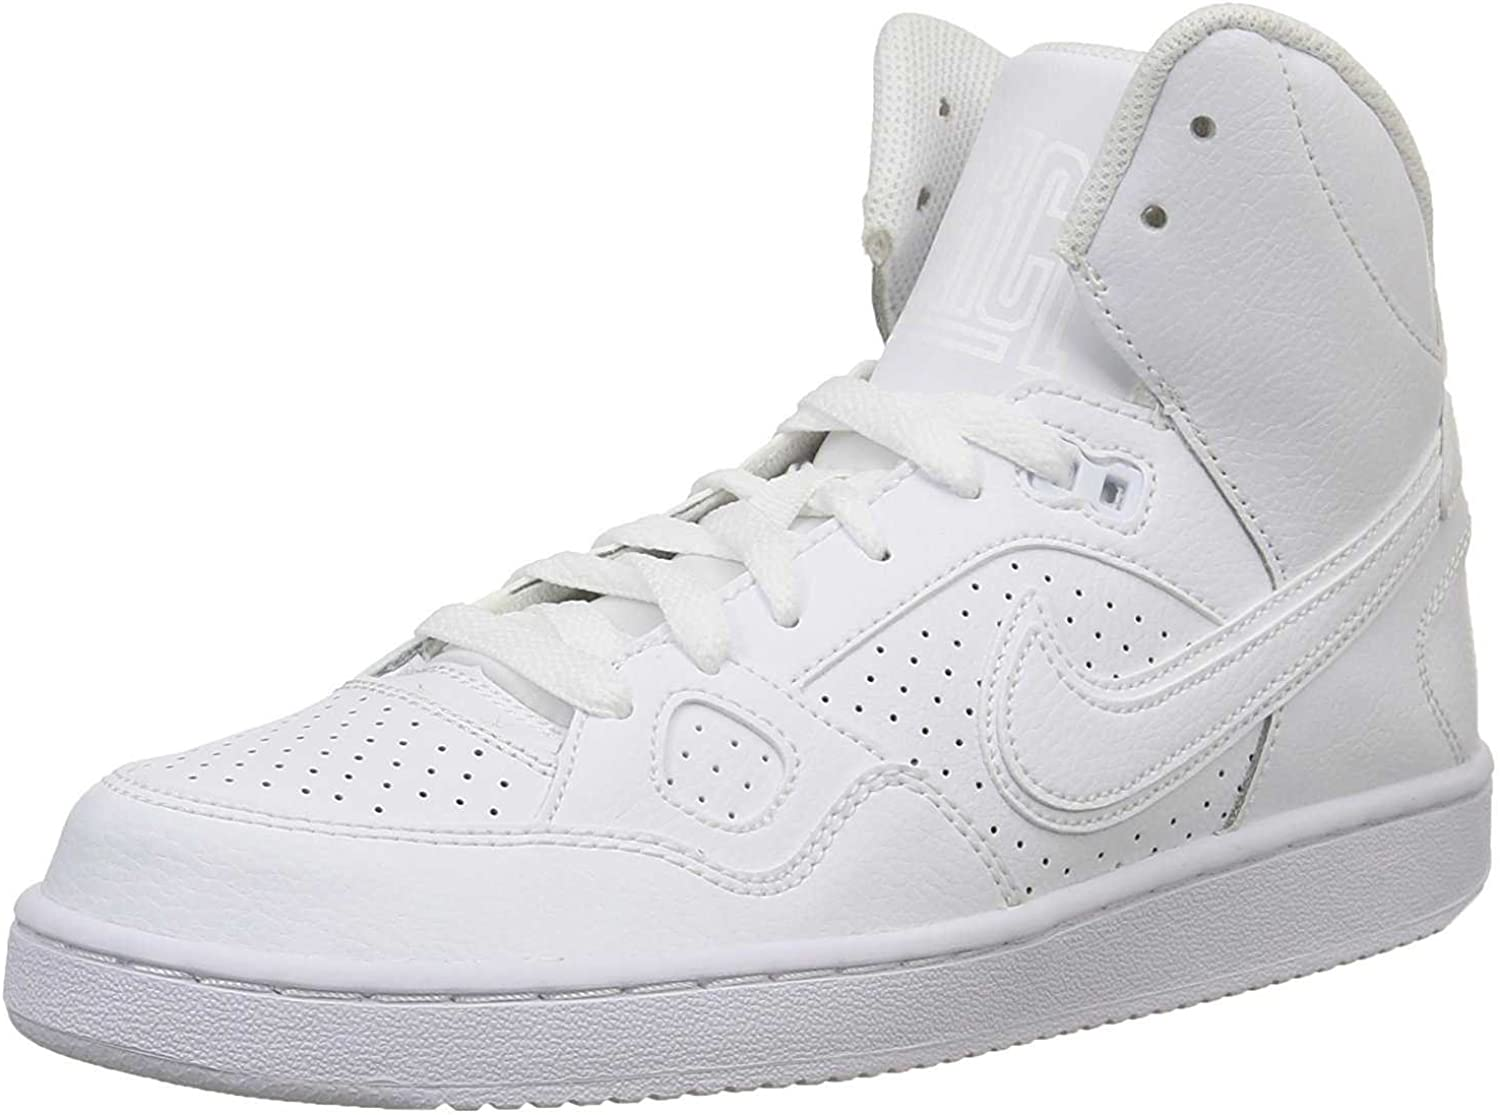 Nike - Son of Force Mid GS - color  White - Size  5.5US